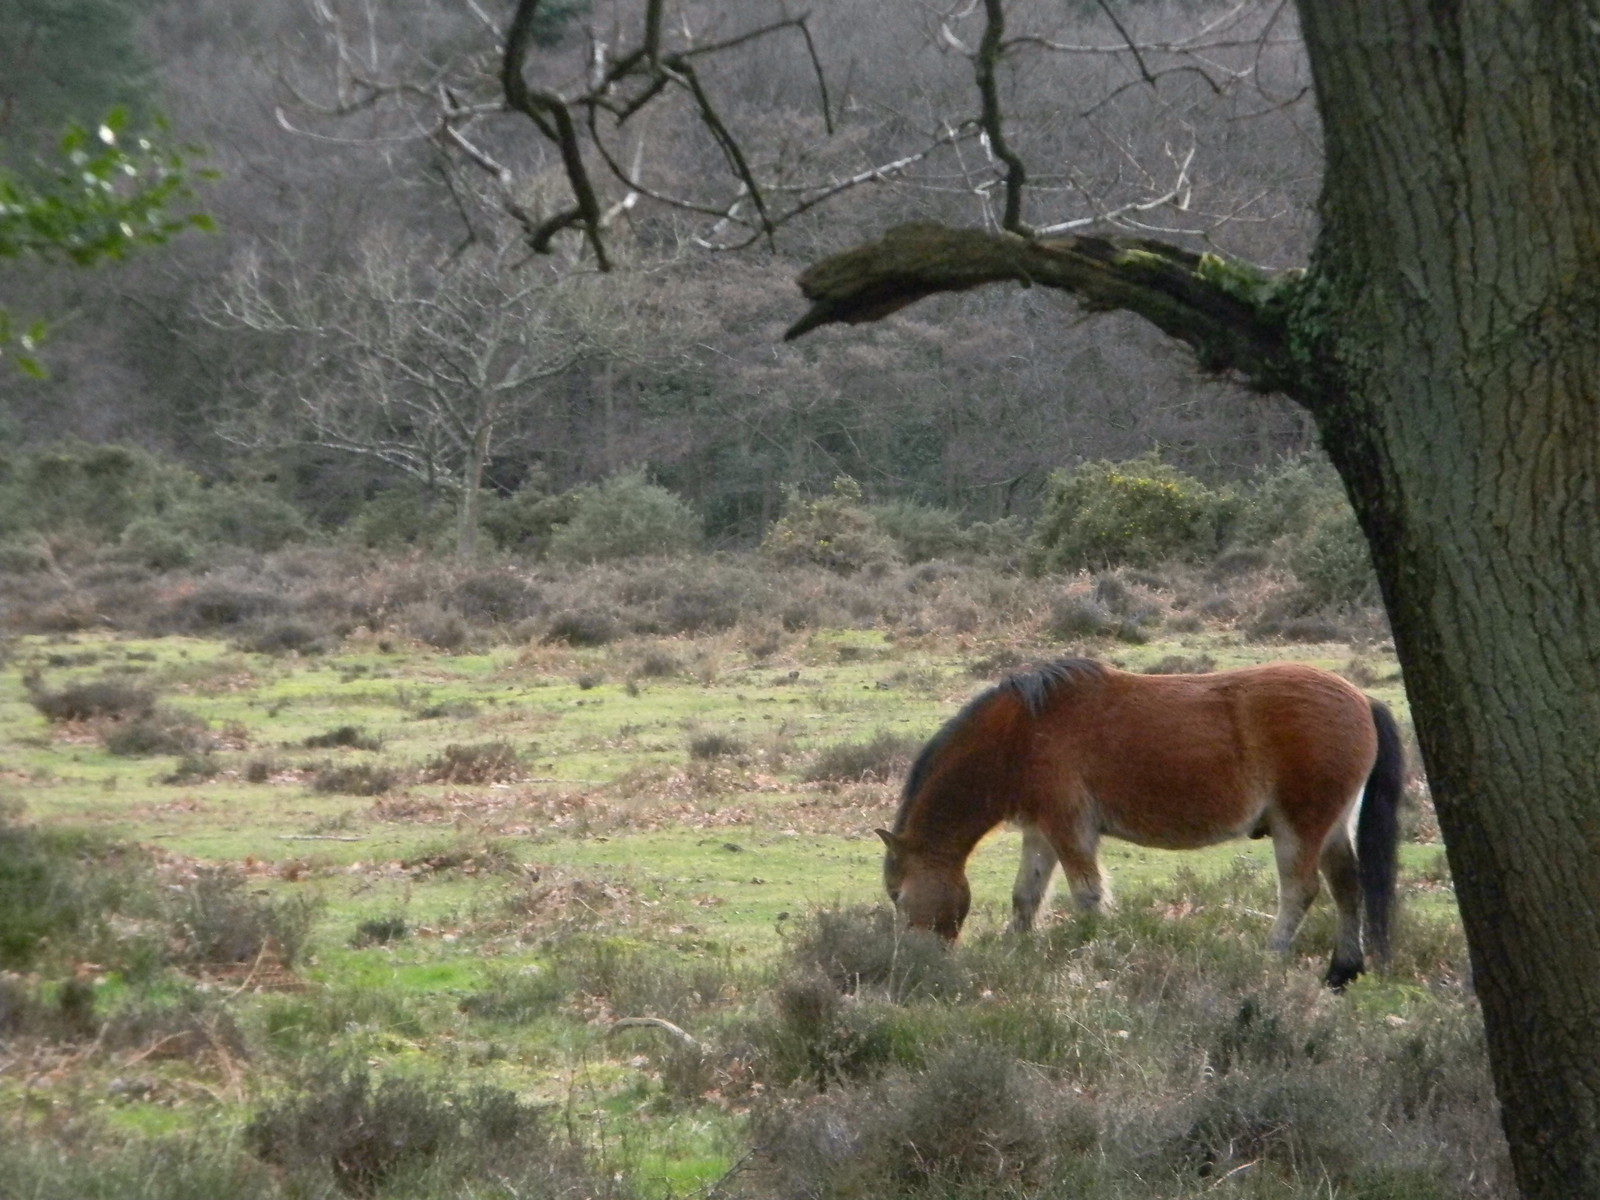 Punchbowl pony Exmoor ponies are grazing the Devil's Punchbowl Milford to Haslemere